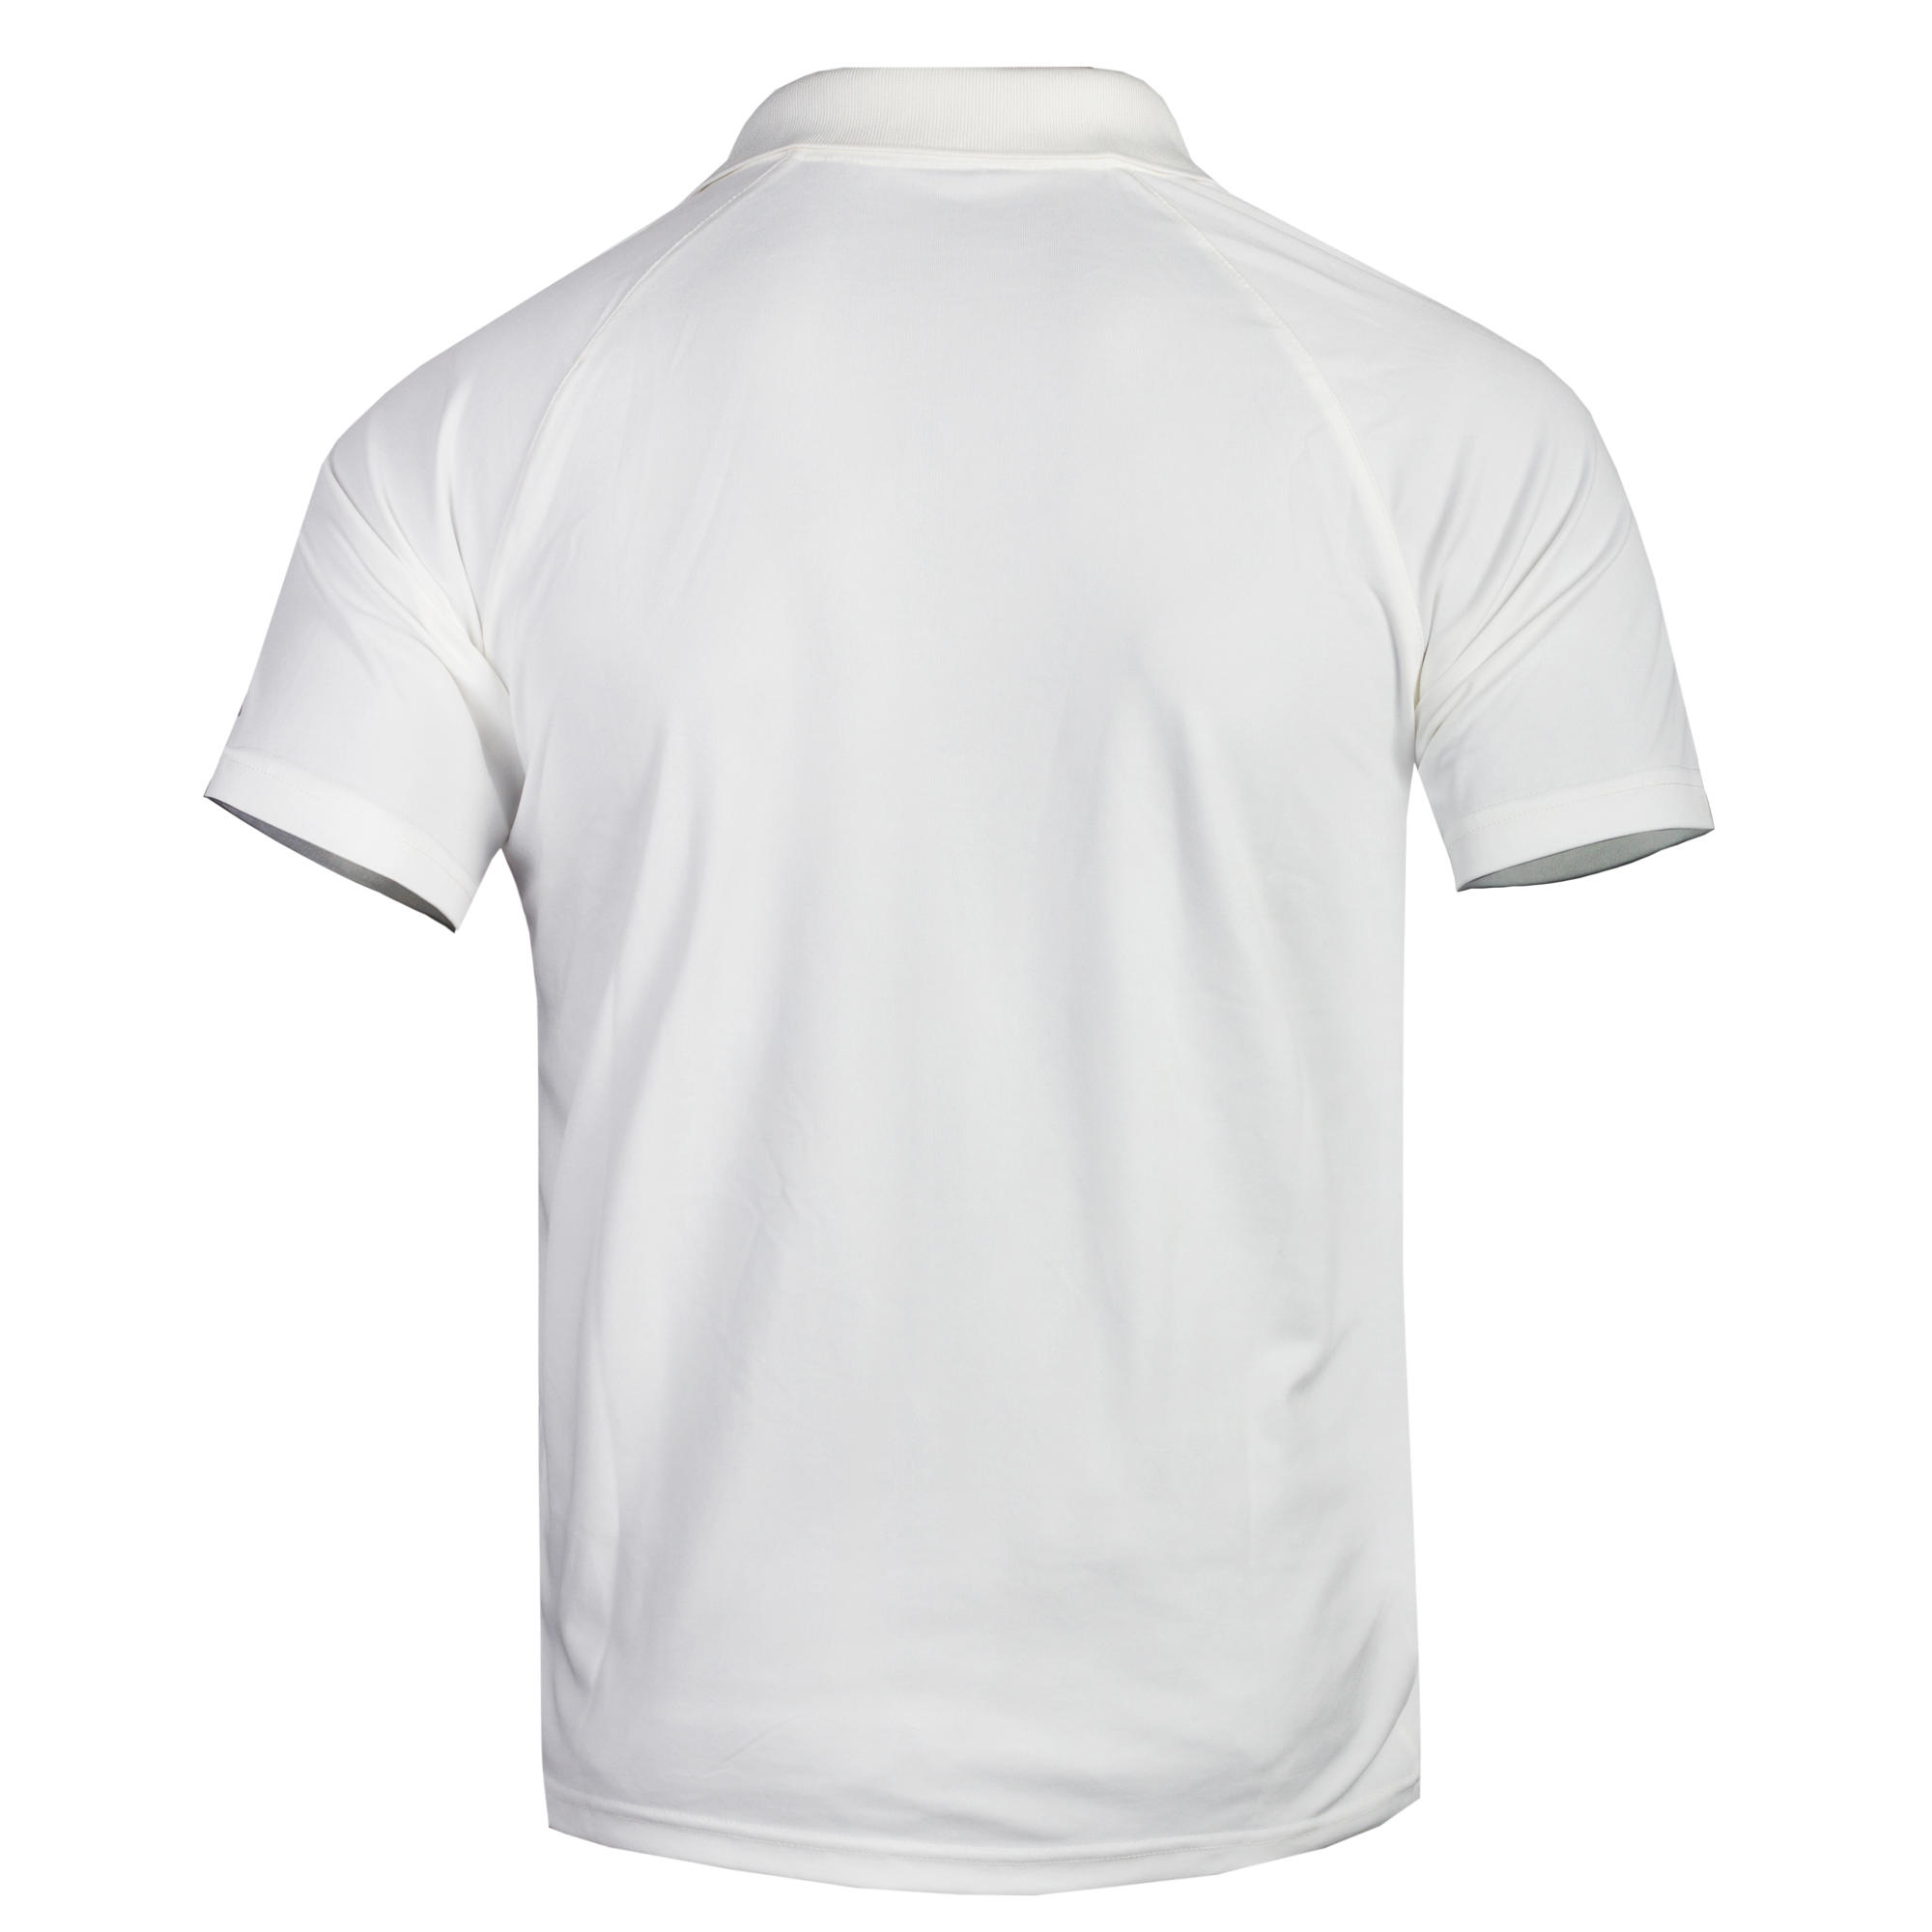 CRICKET WHITE POLO PW 920